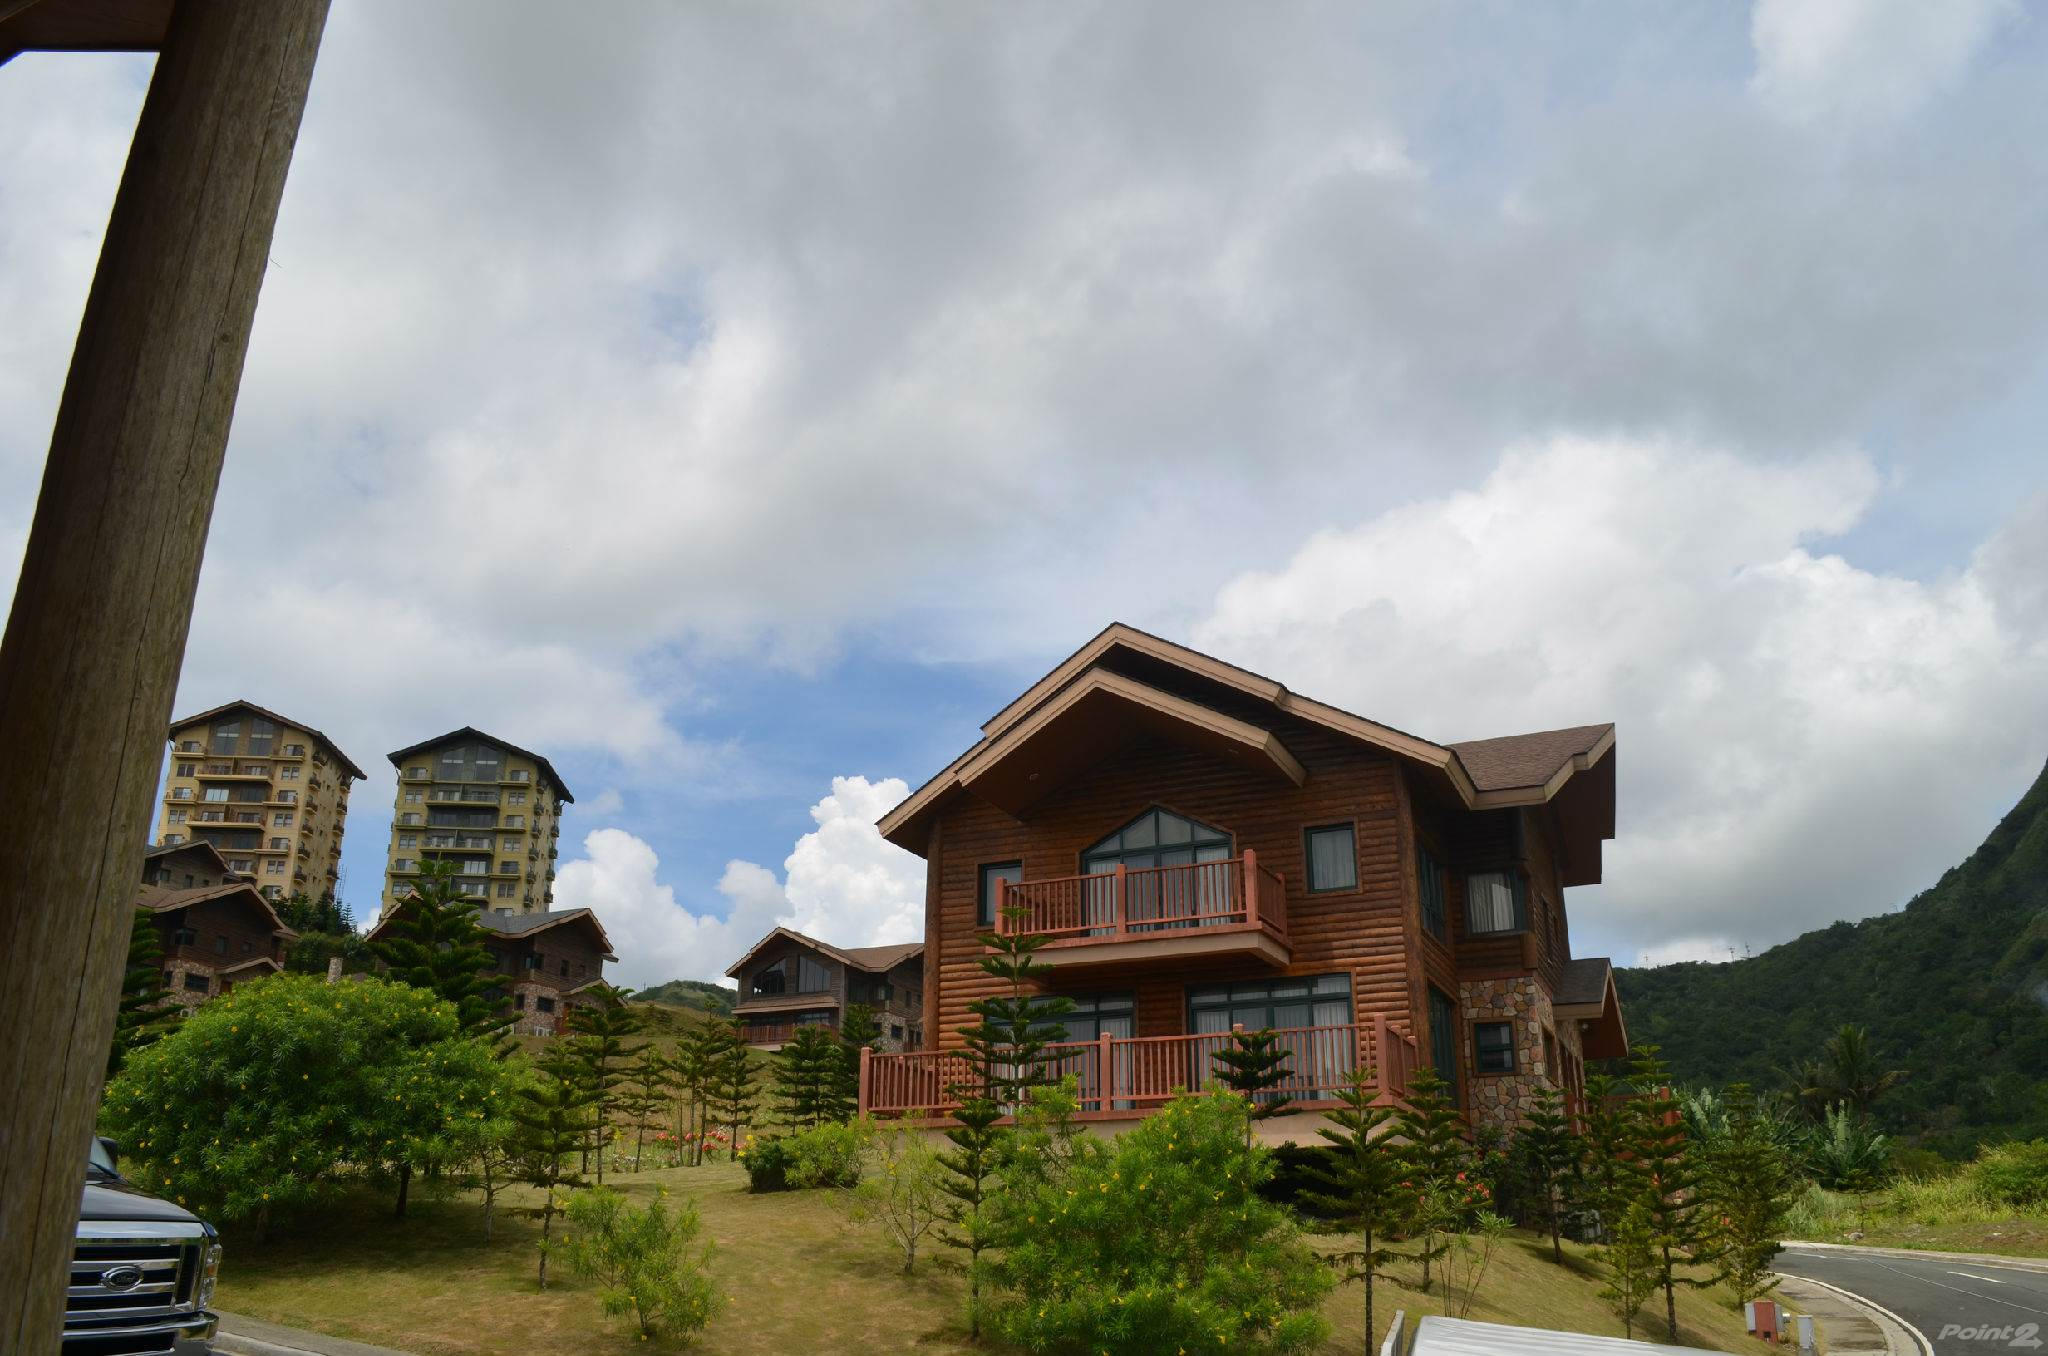 Condominium for sale in Woodlands Point, Tagaytay Highlands, Tagaytay, Cavite ,4120  , Philippines